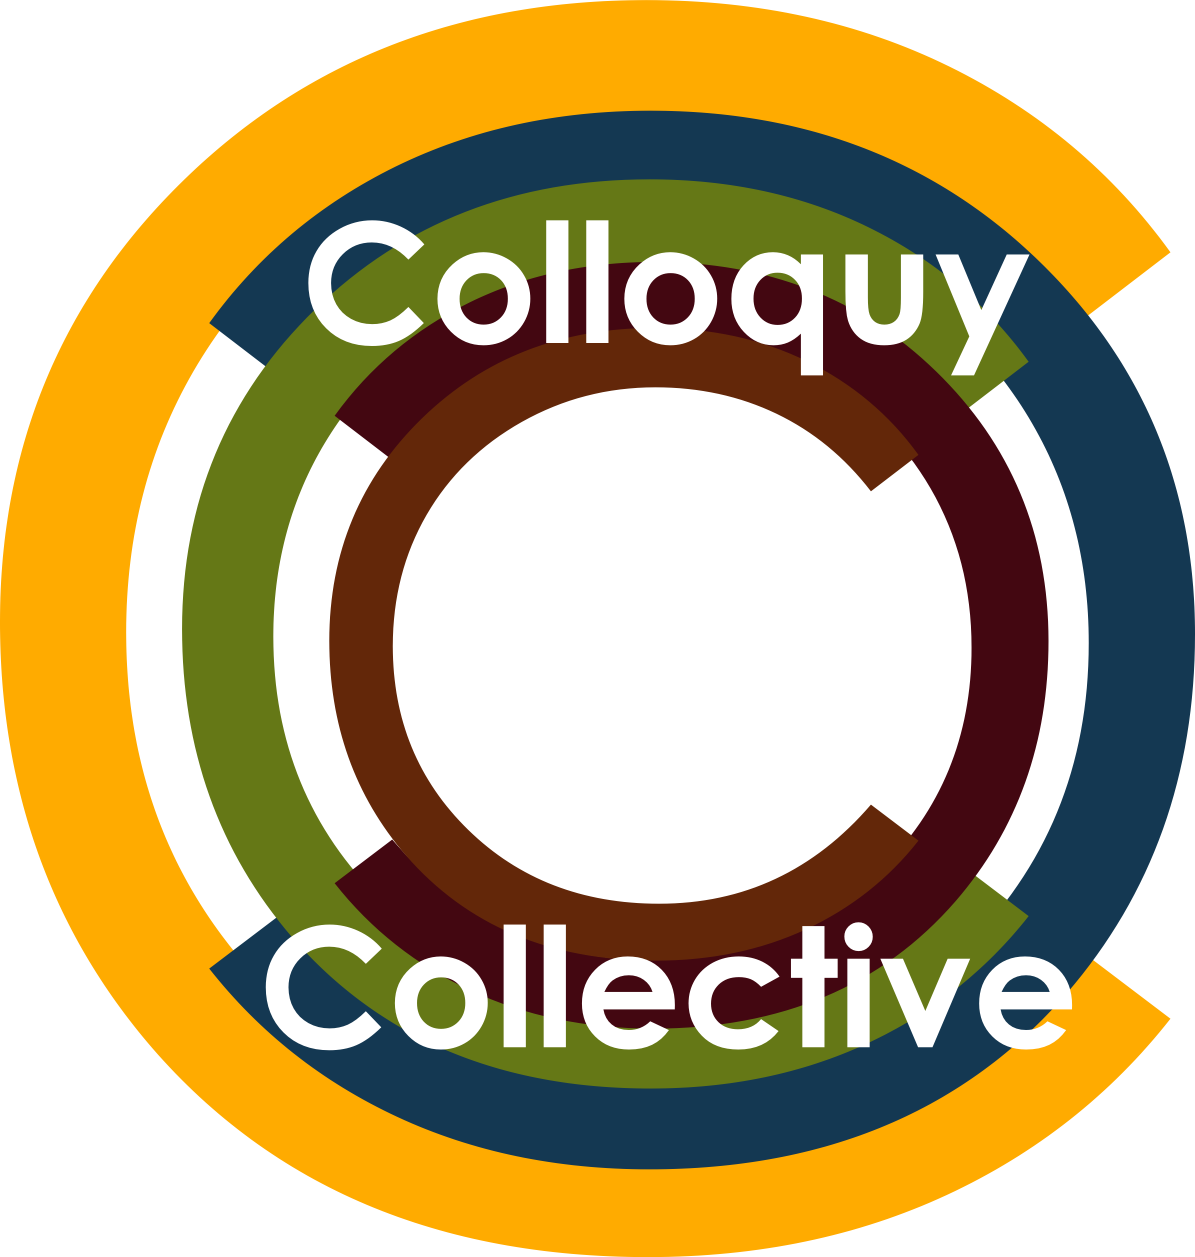 Colloquy Collective